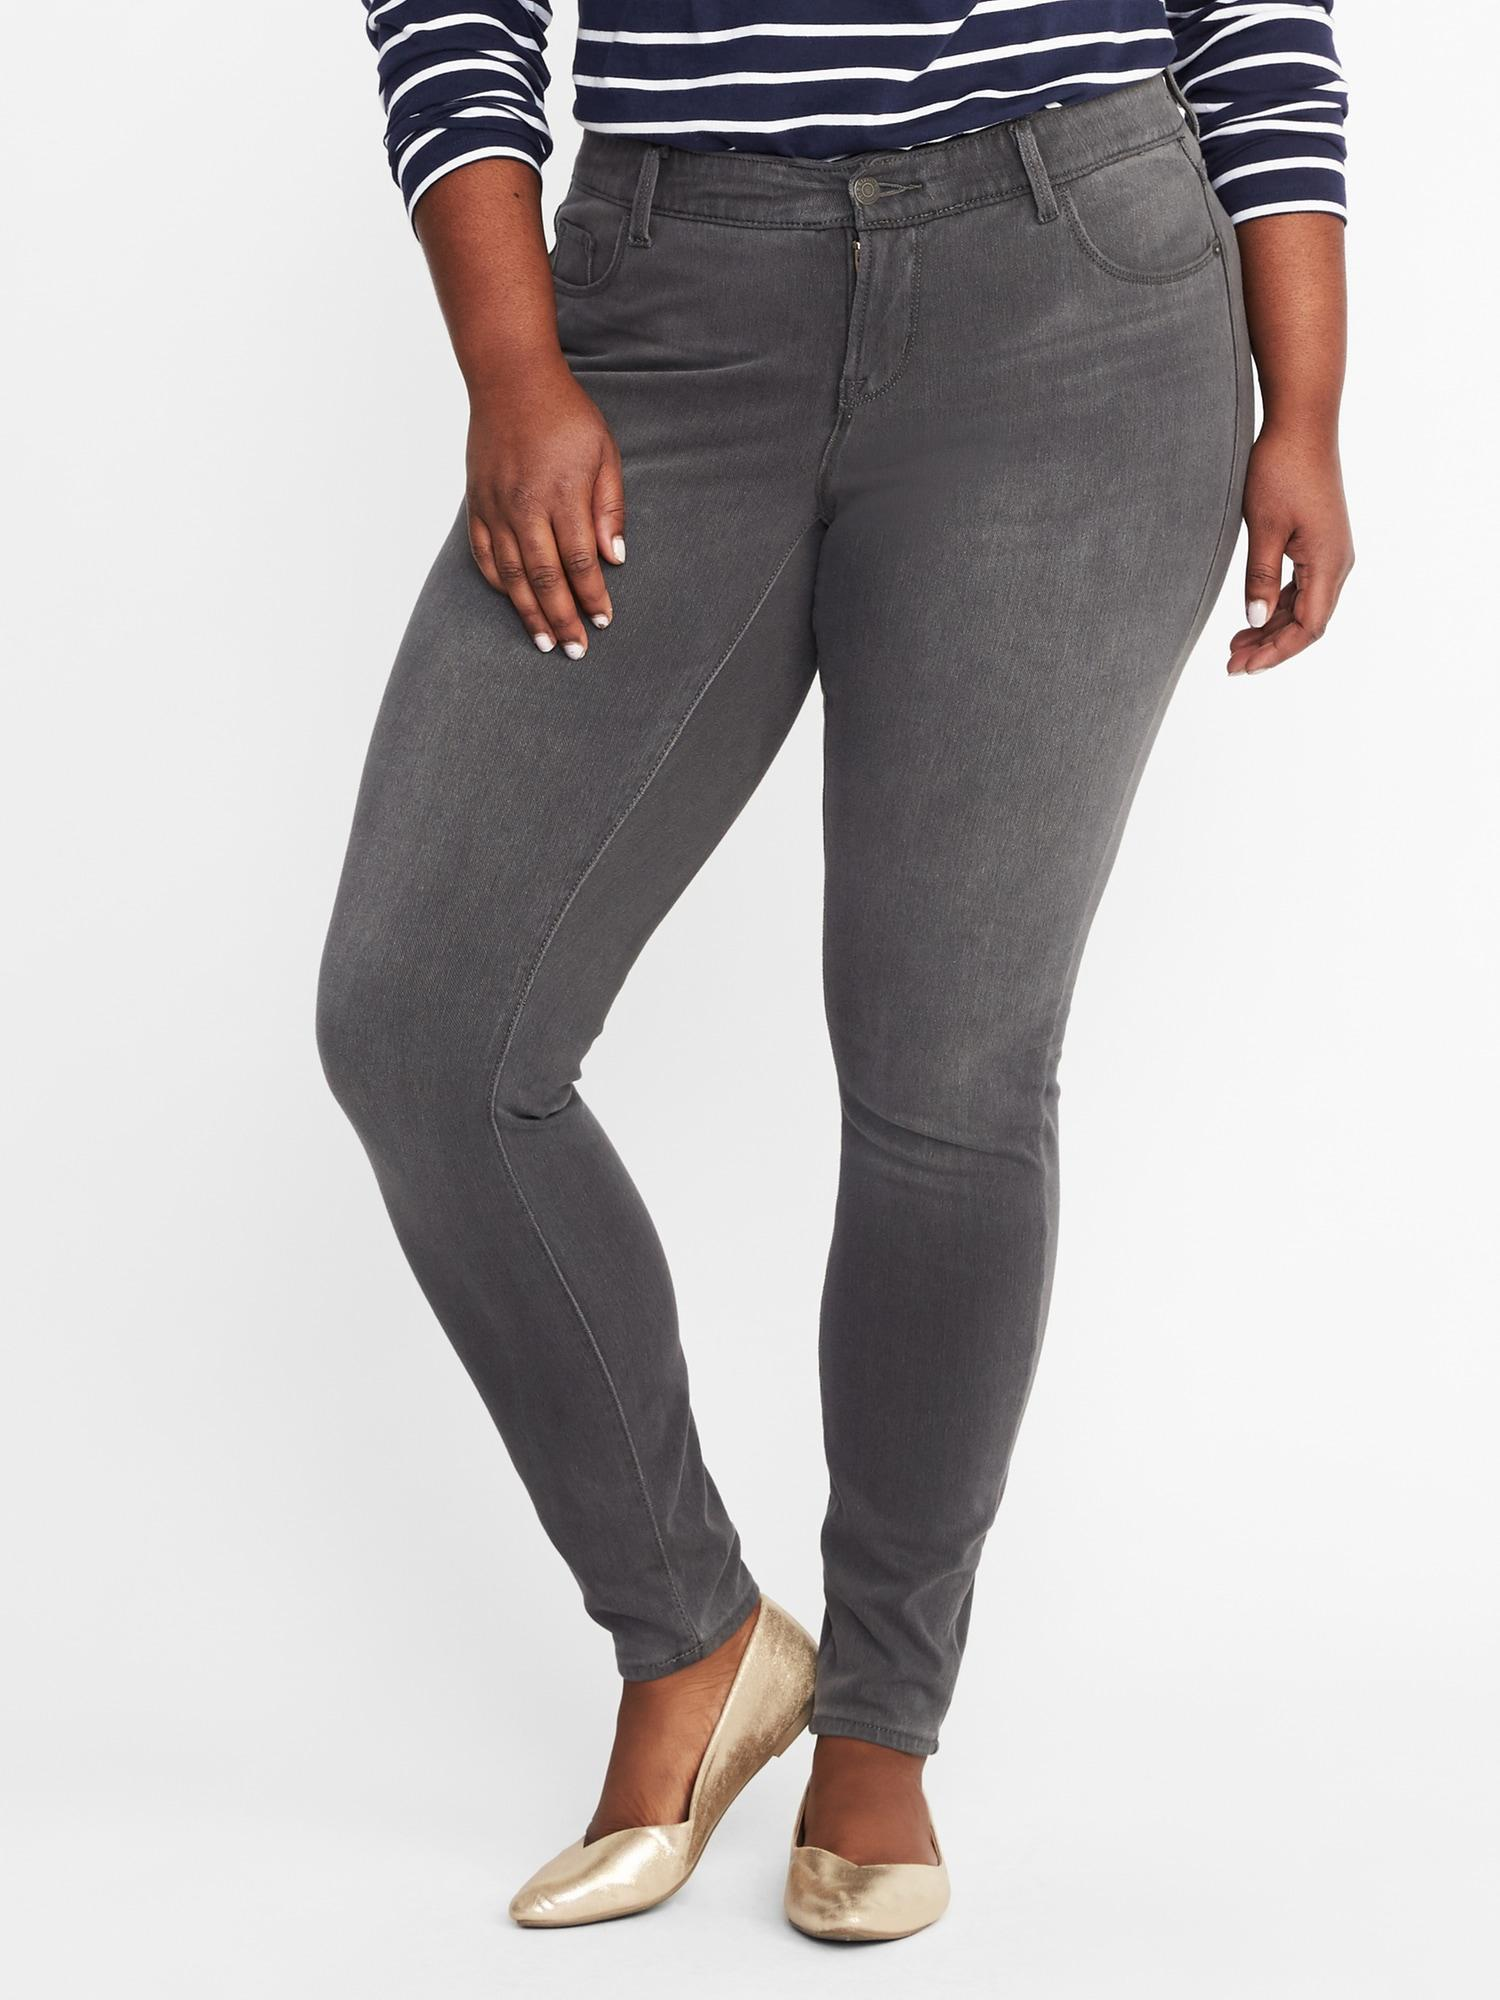 e3820c809c33 Old Navy. Women s Gray High-rise Secret-slim Pockets + Waistband Plus-size  Rockstar 24 7 Jeans